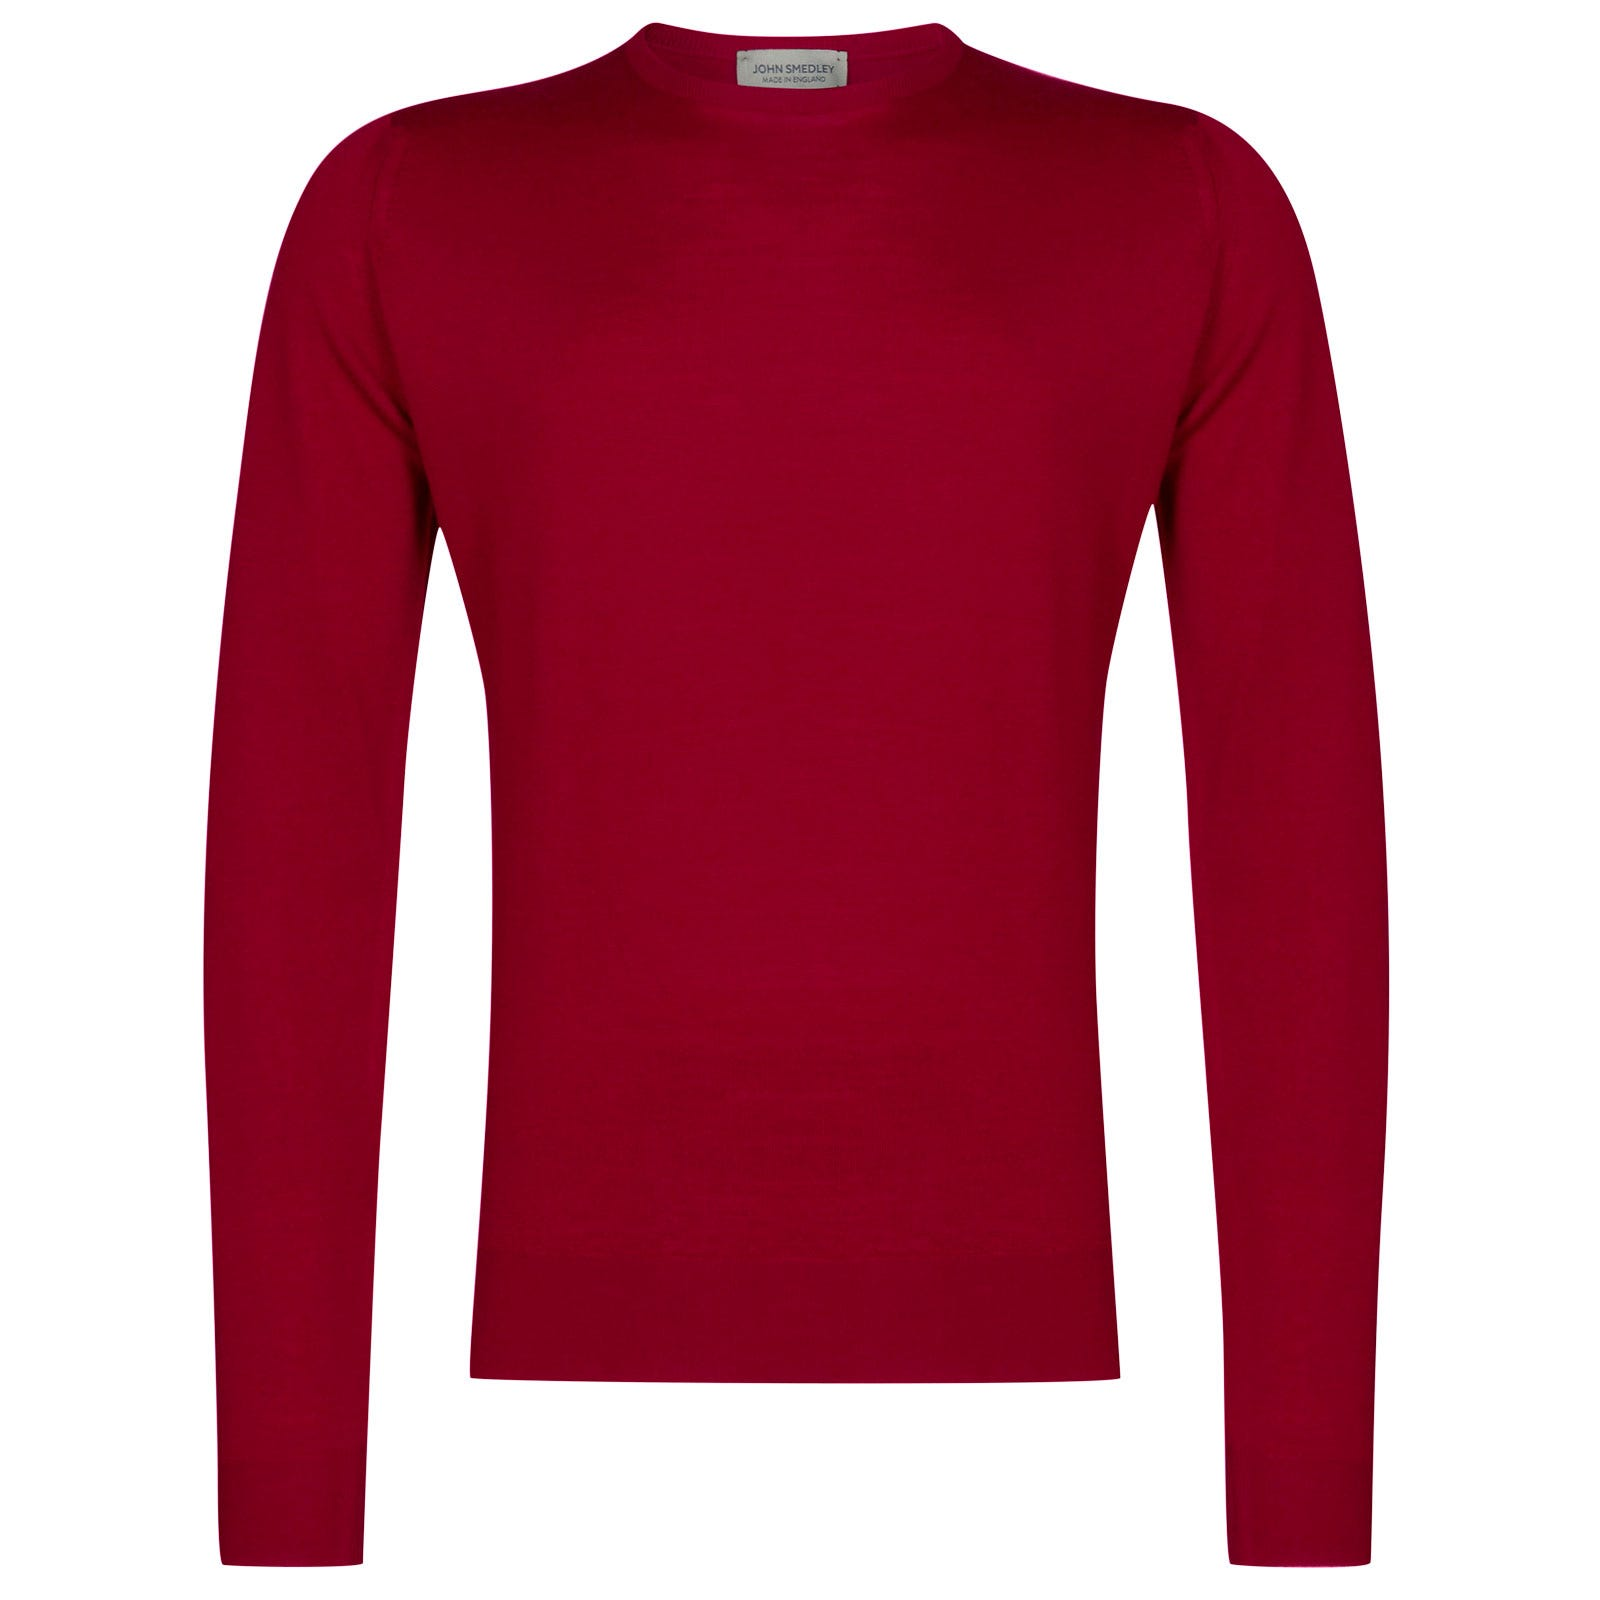 John Smedley lundy Merino Wool Pullover in Scarlet Sky-S